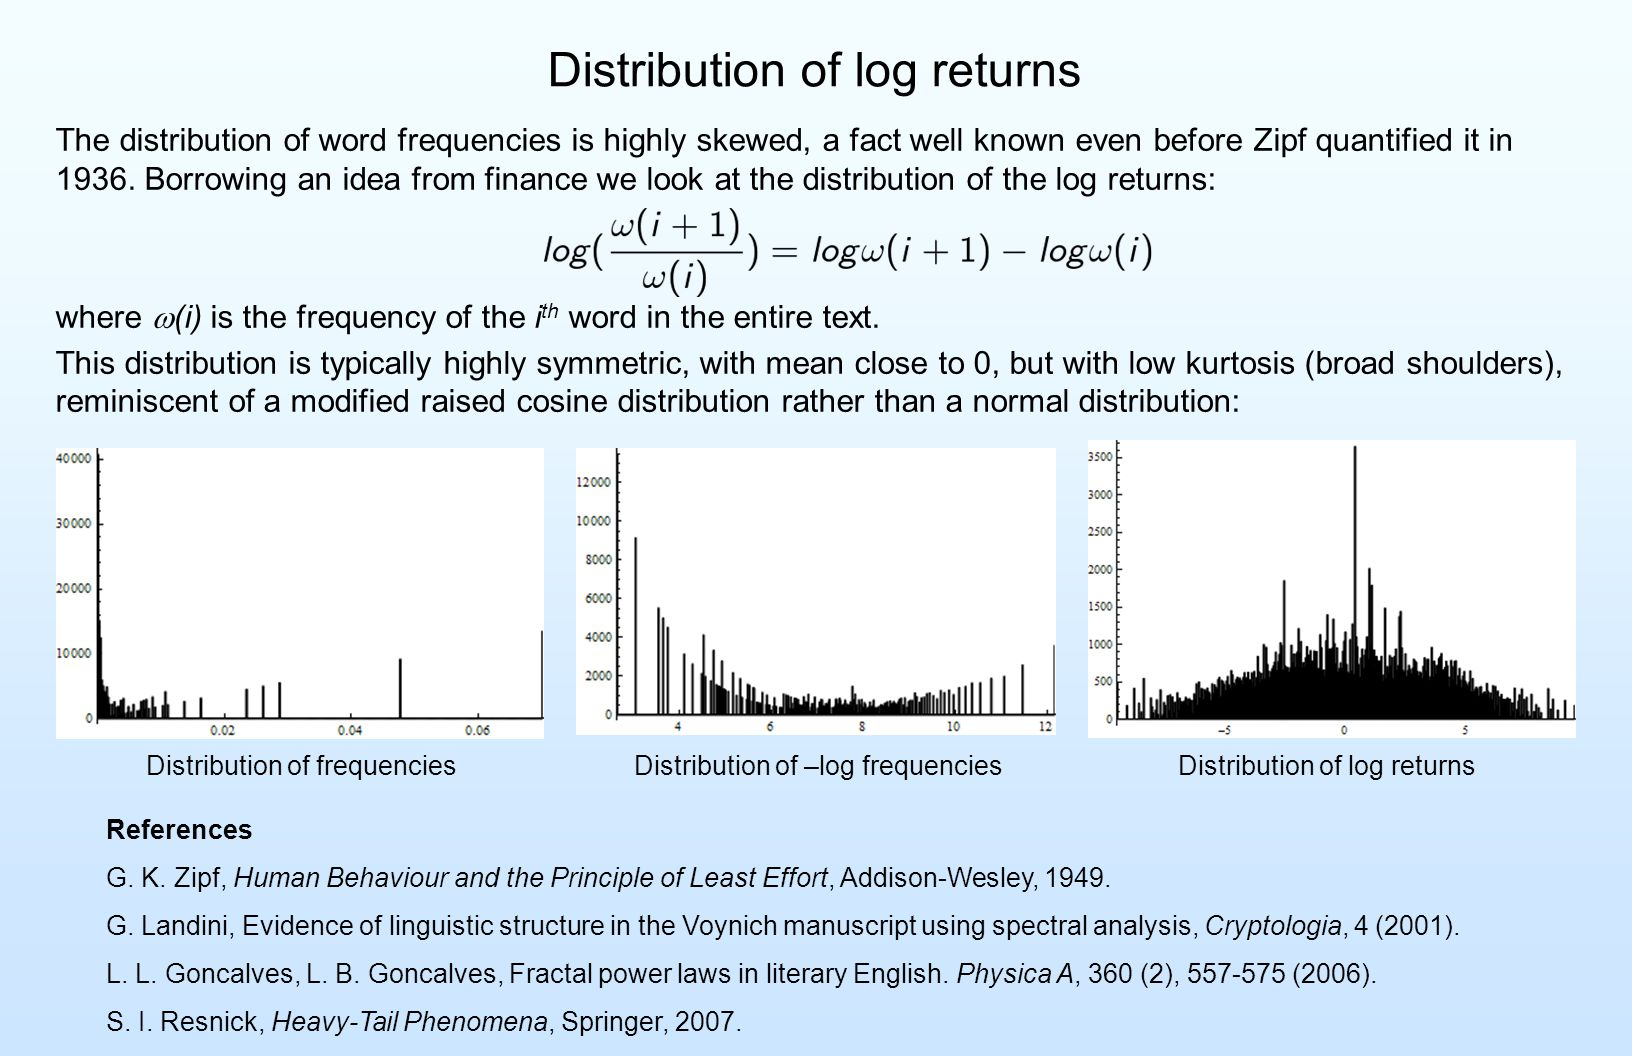 Distribution of log returns The distribution of word frequencies is highly skewed, a fact well known even before Zipf quantified it in 1936.